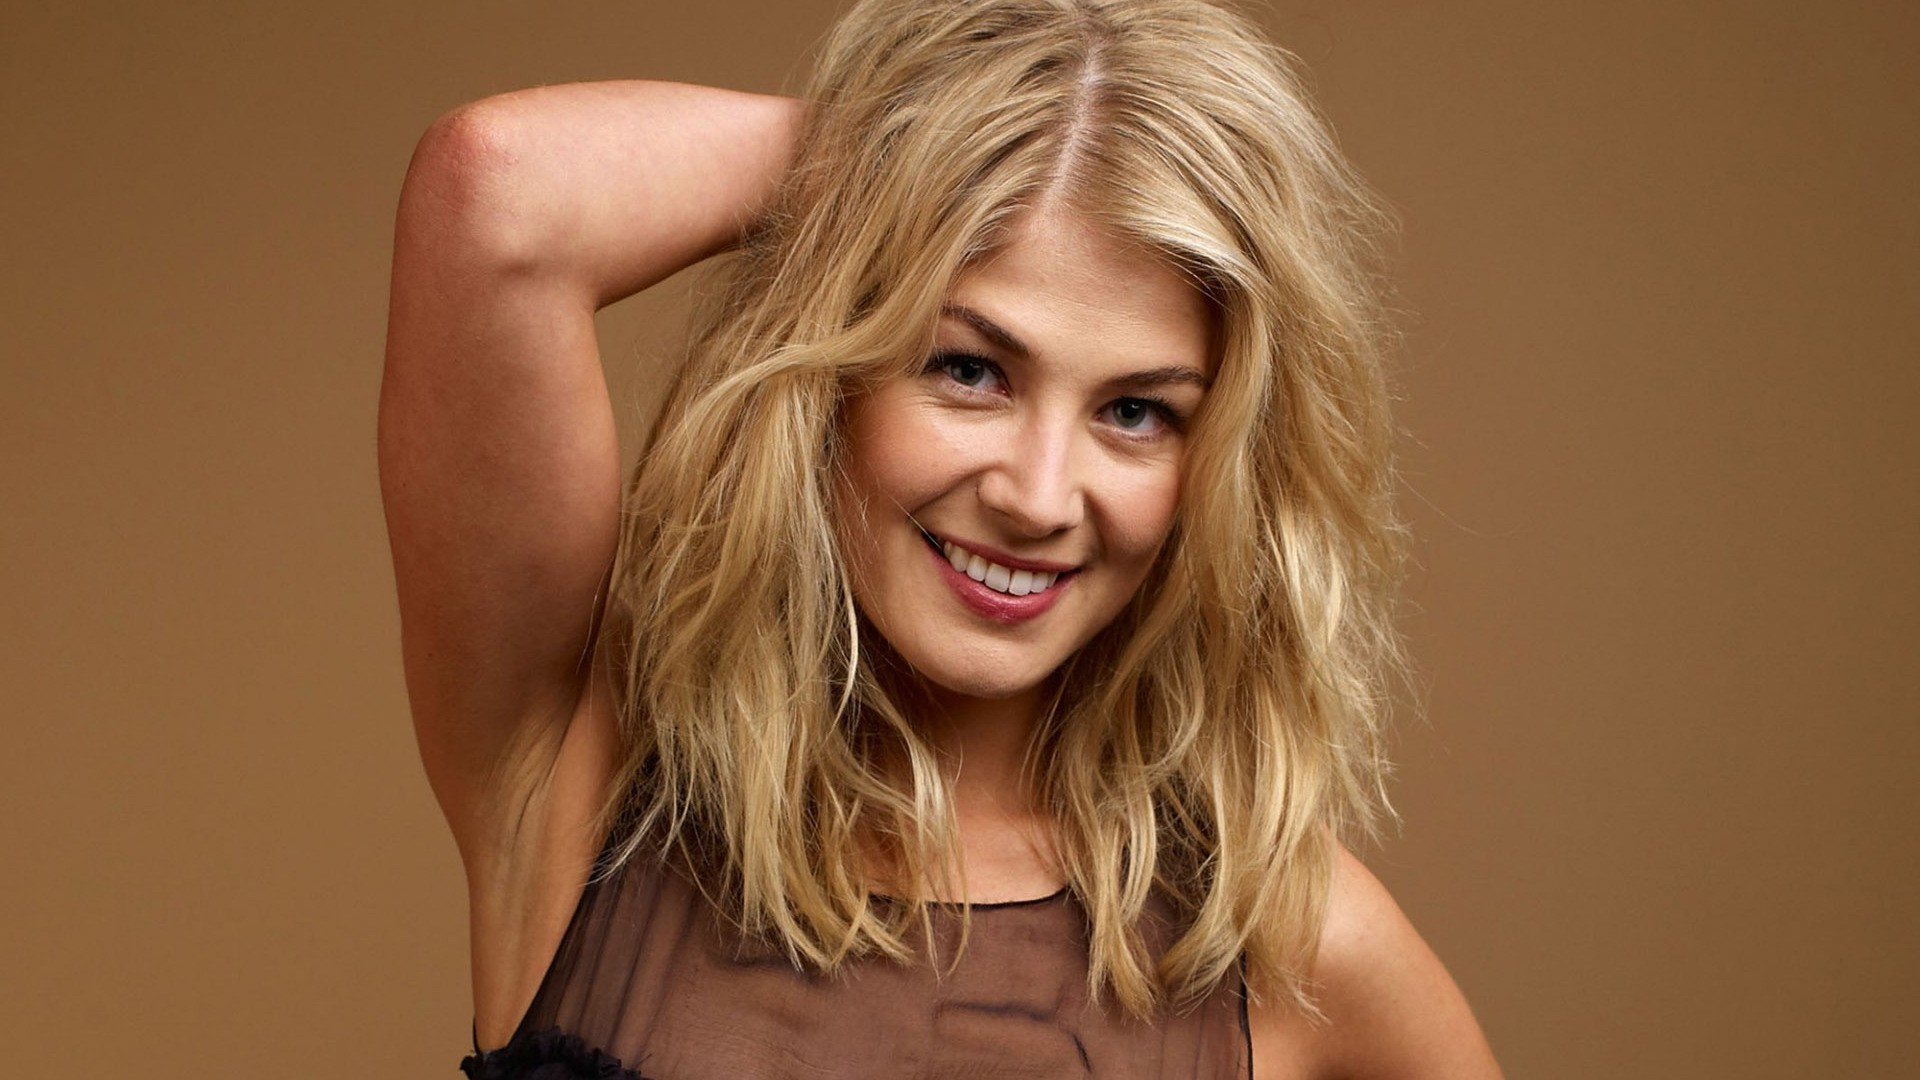 1920x1080 - Rosamund Pike Wallpapers 24